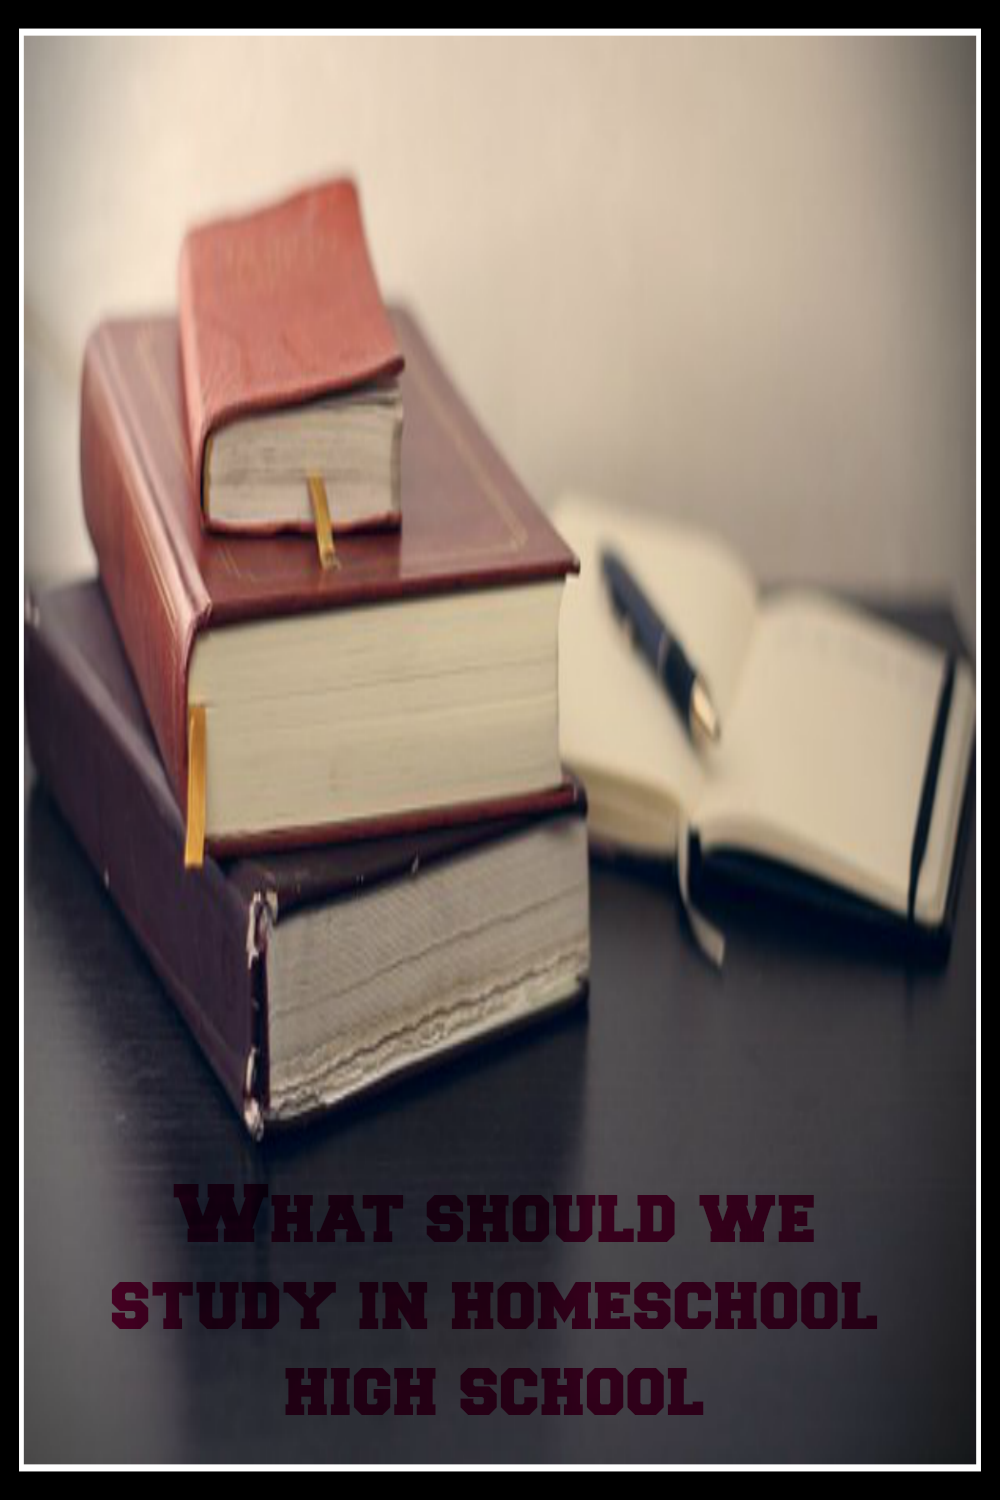 What Should we Study while Homeschooling High School?